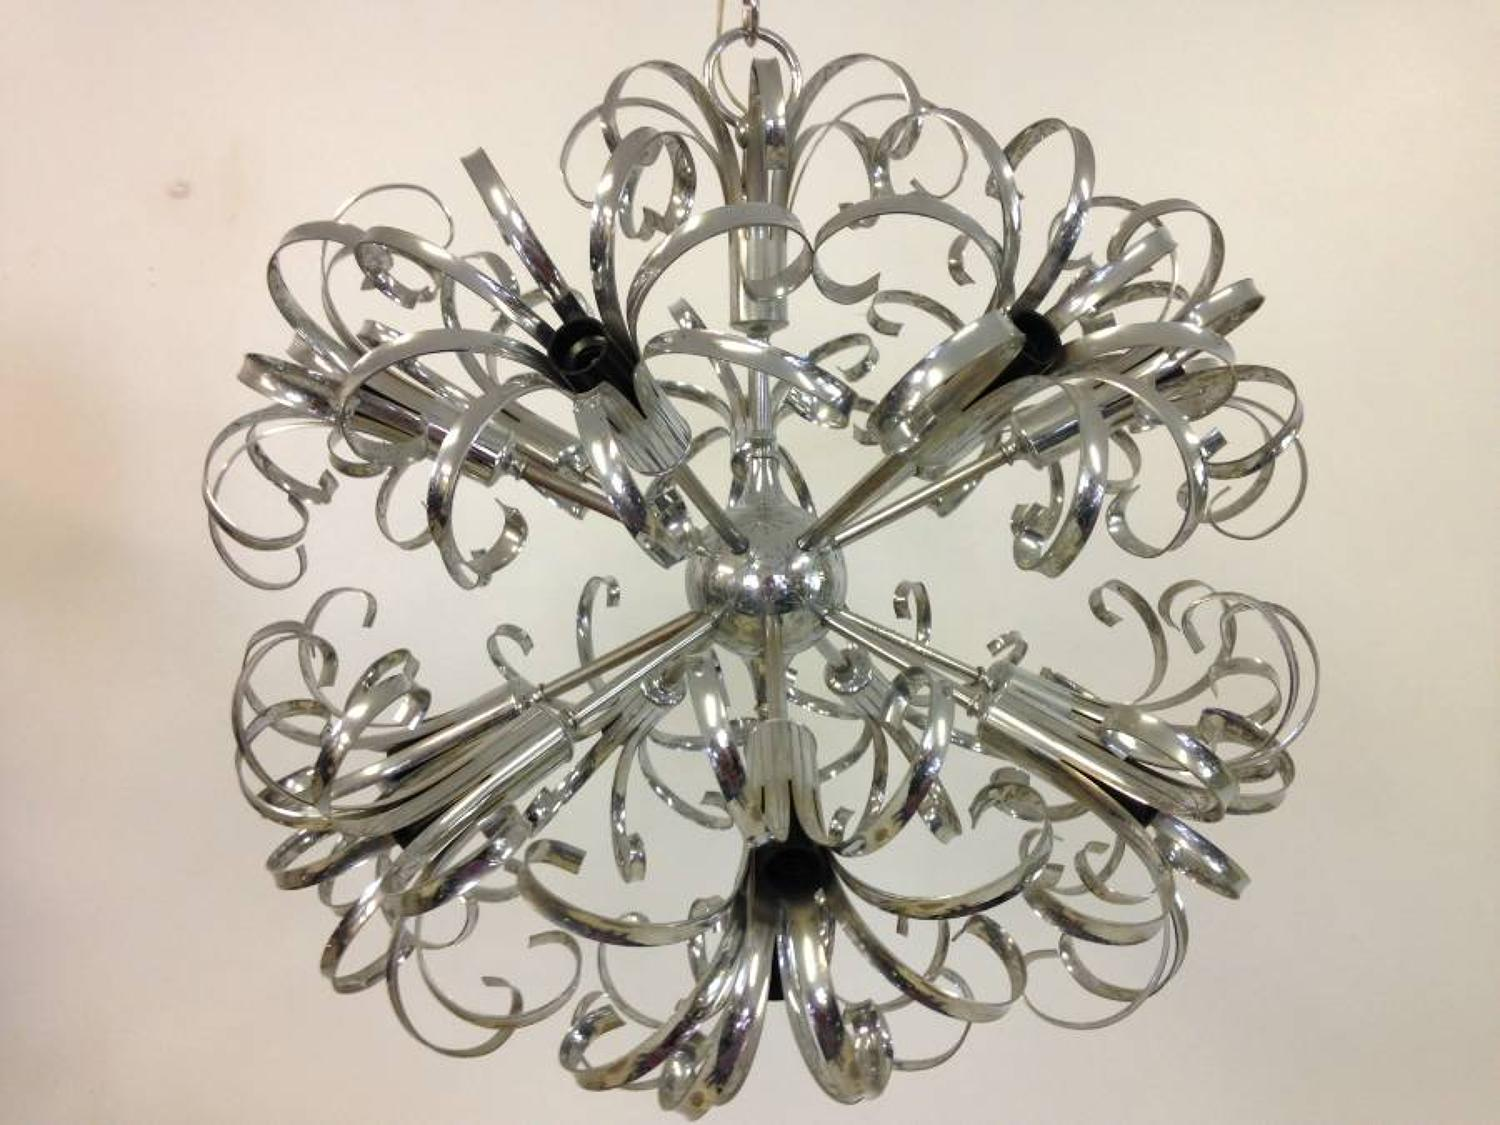 Chrome exploding sputnik chandelier